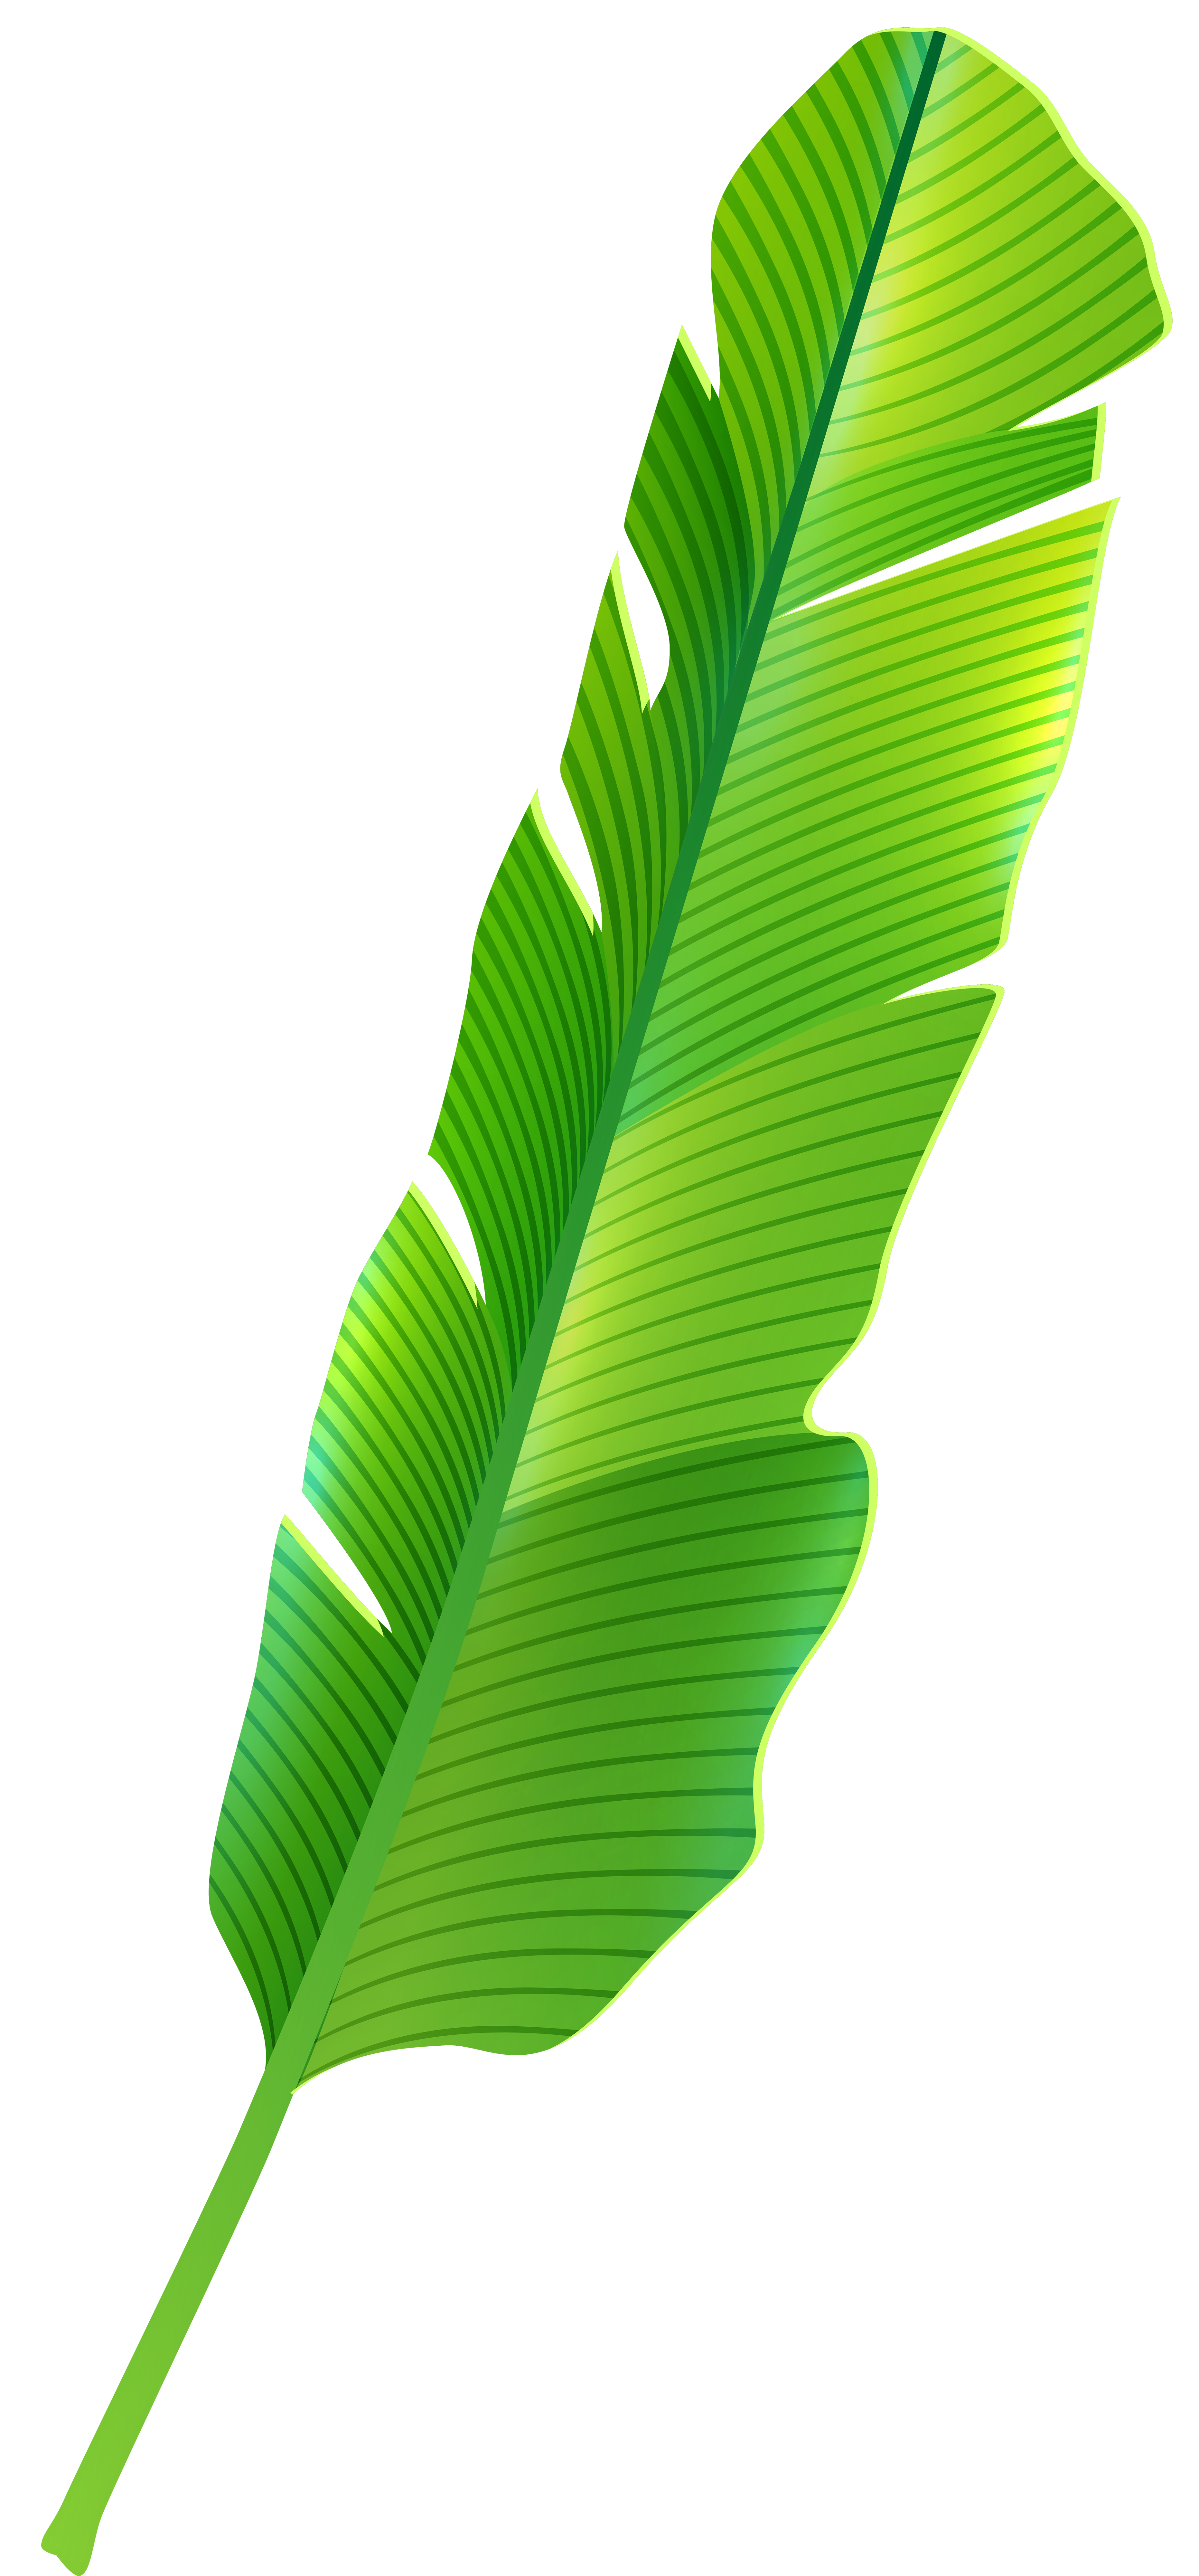 Banana leaves png. Tropical leaf clip art